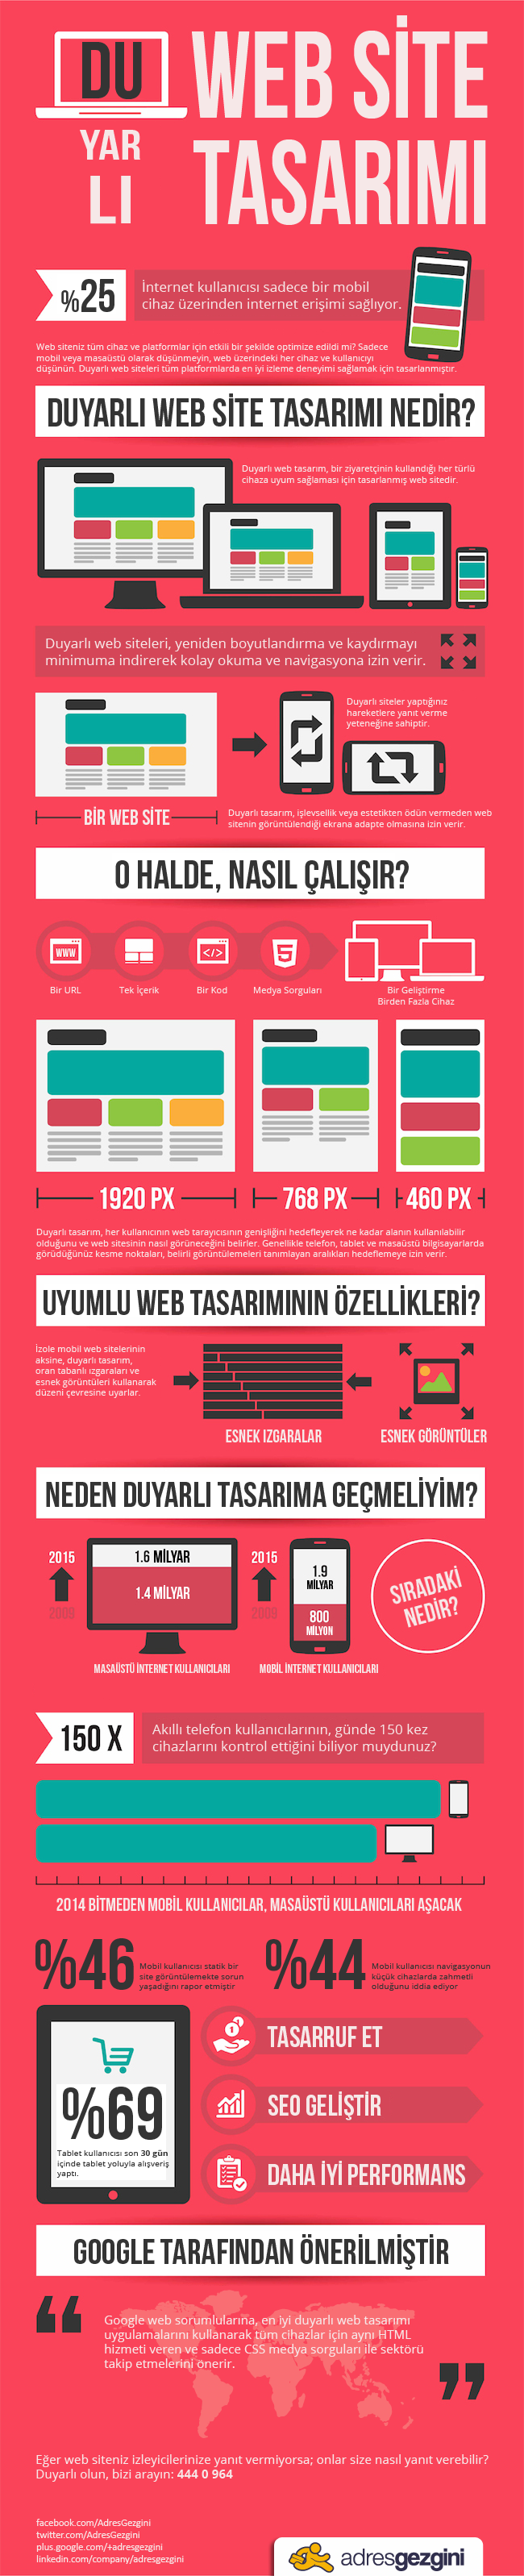 duyarli_website_tasarimi